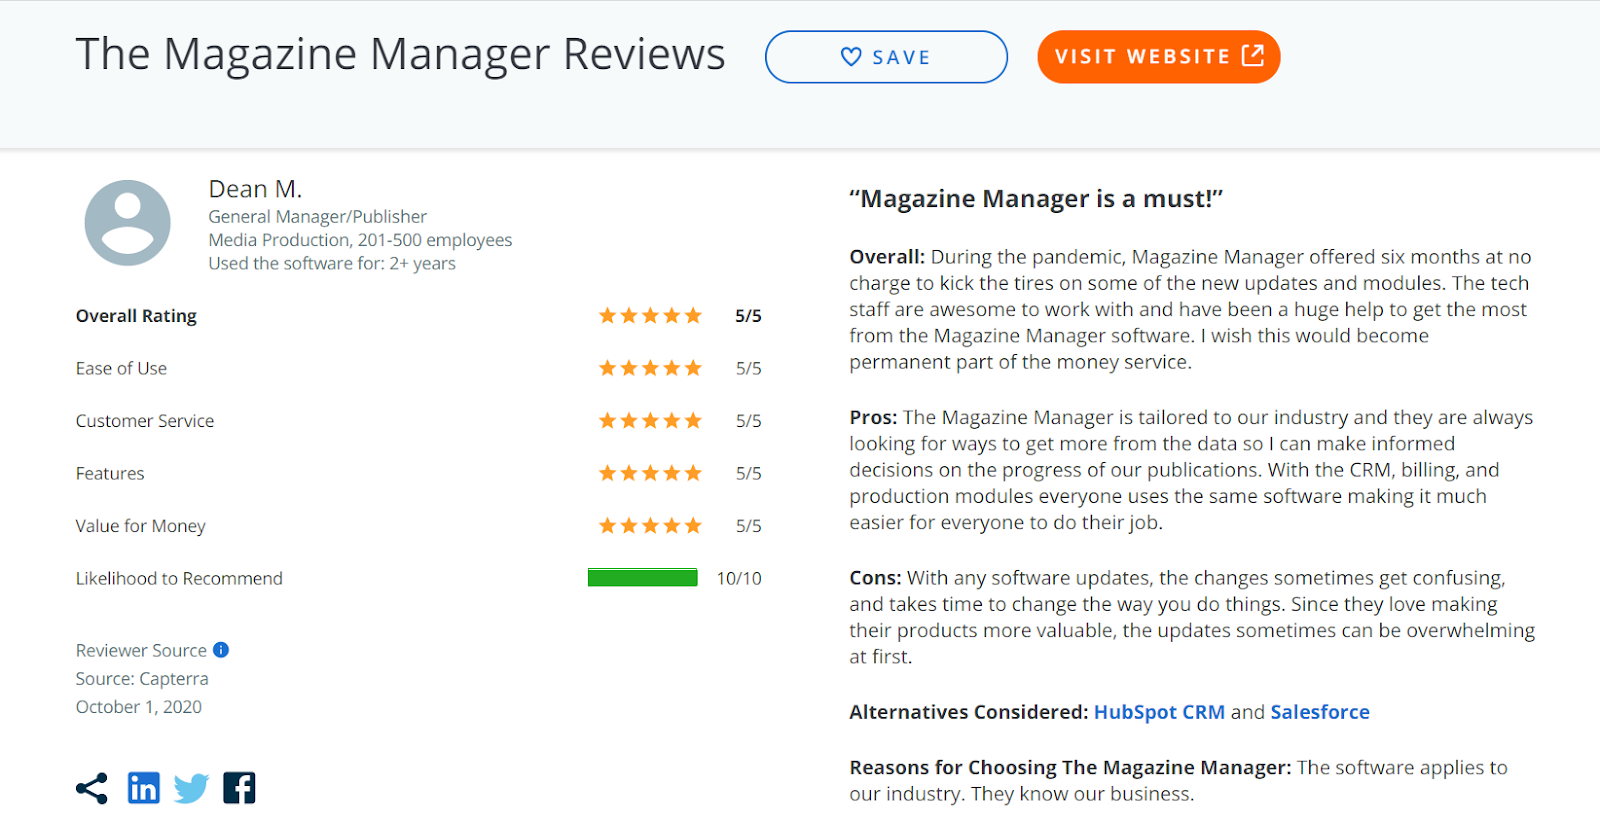 An example review of The Magazine Manager from Capterra, a product review site